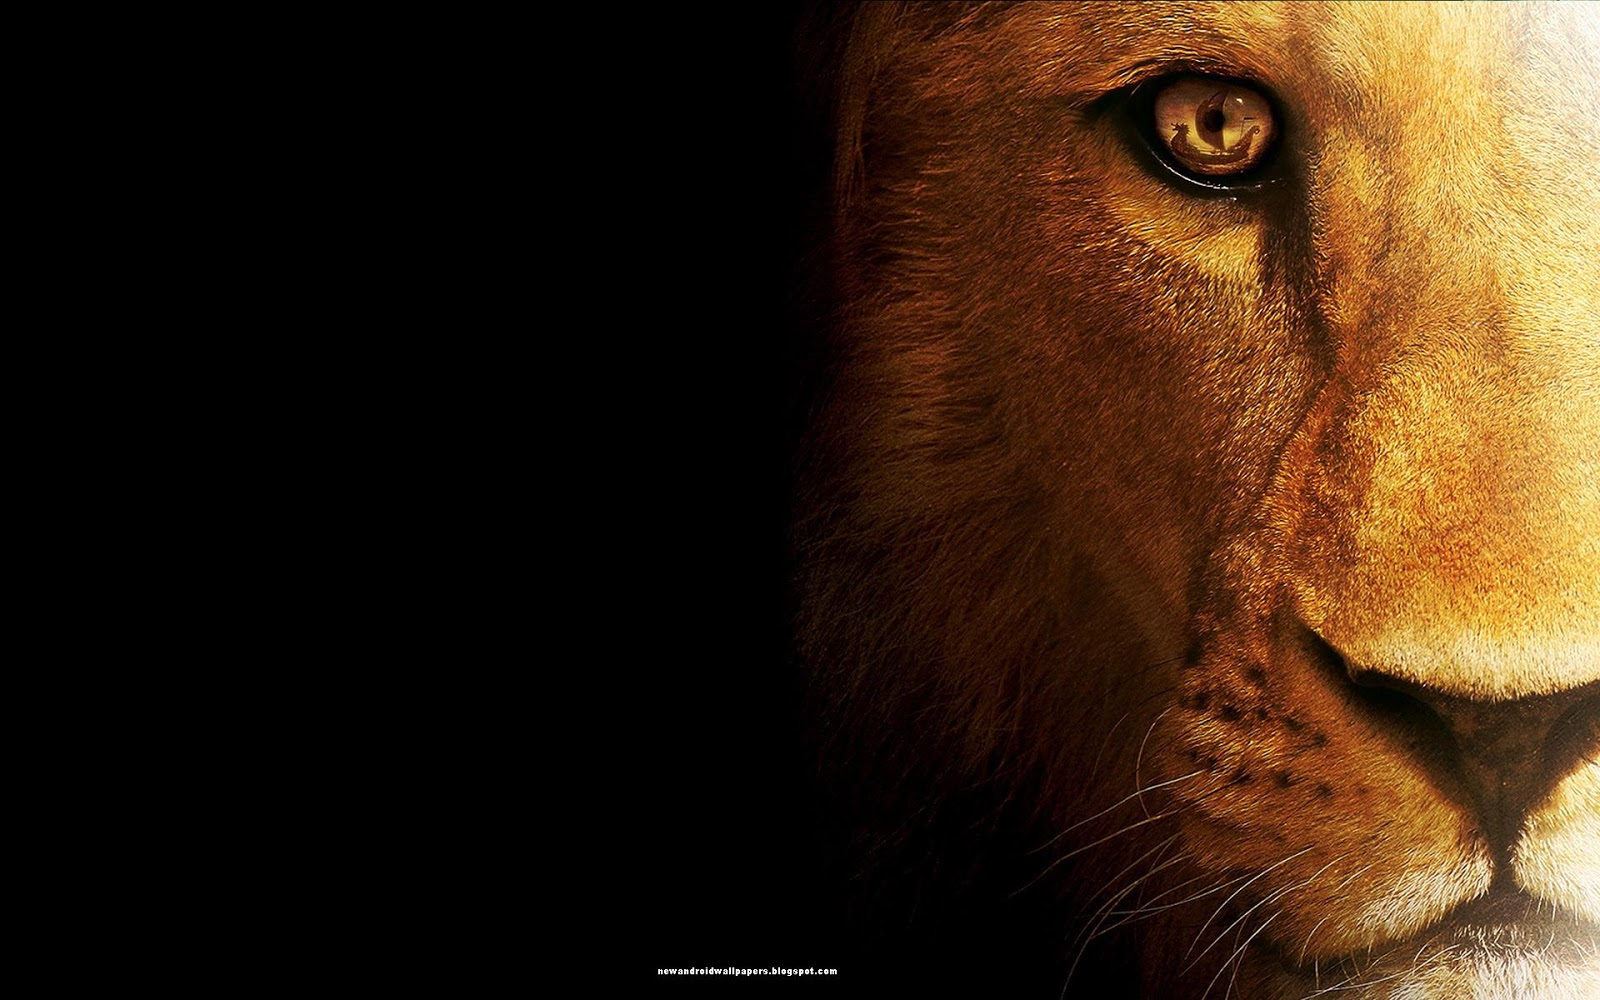 lion in amazing style wallpapers hd for desktop, mac, android